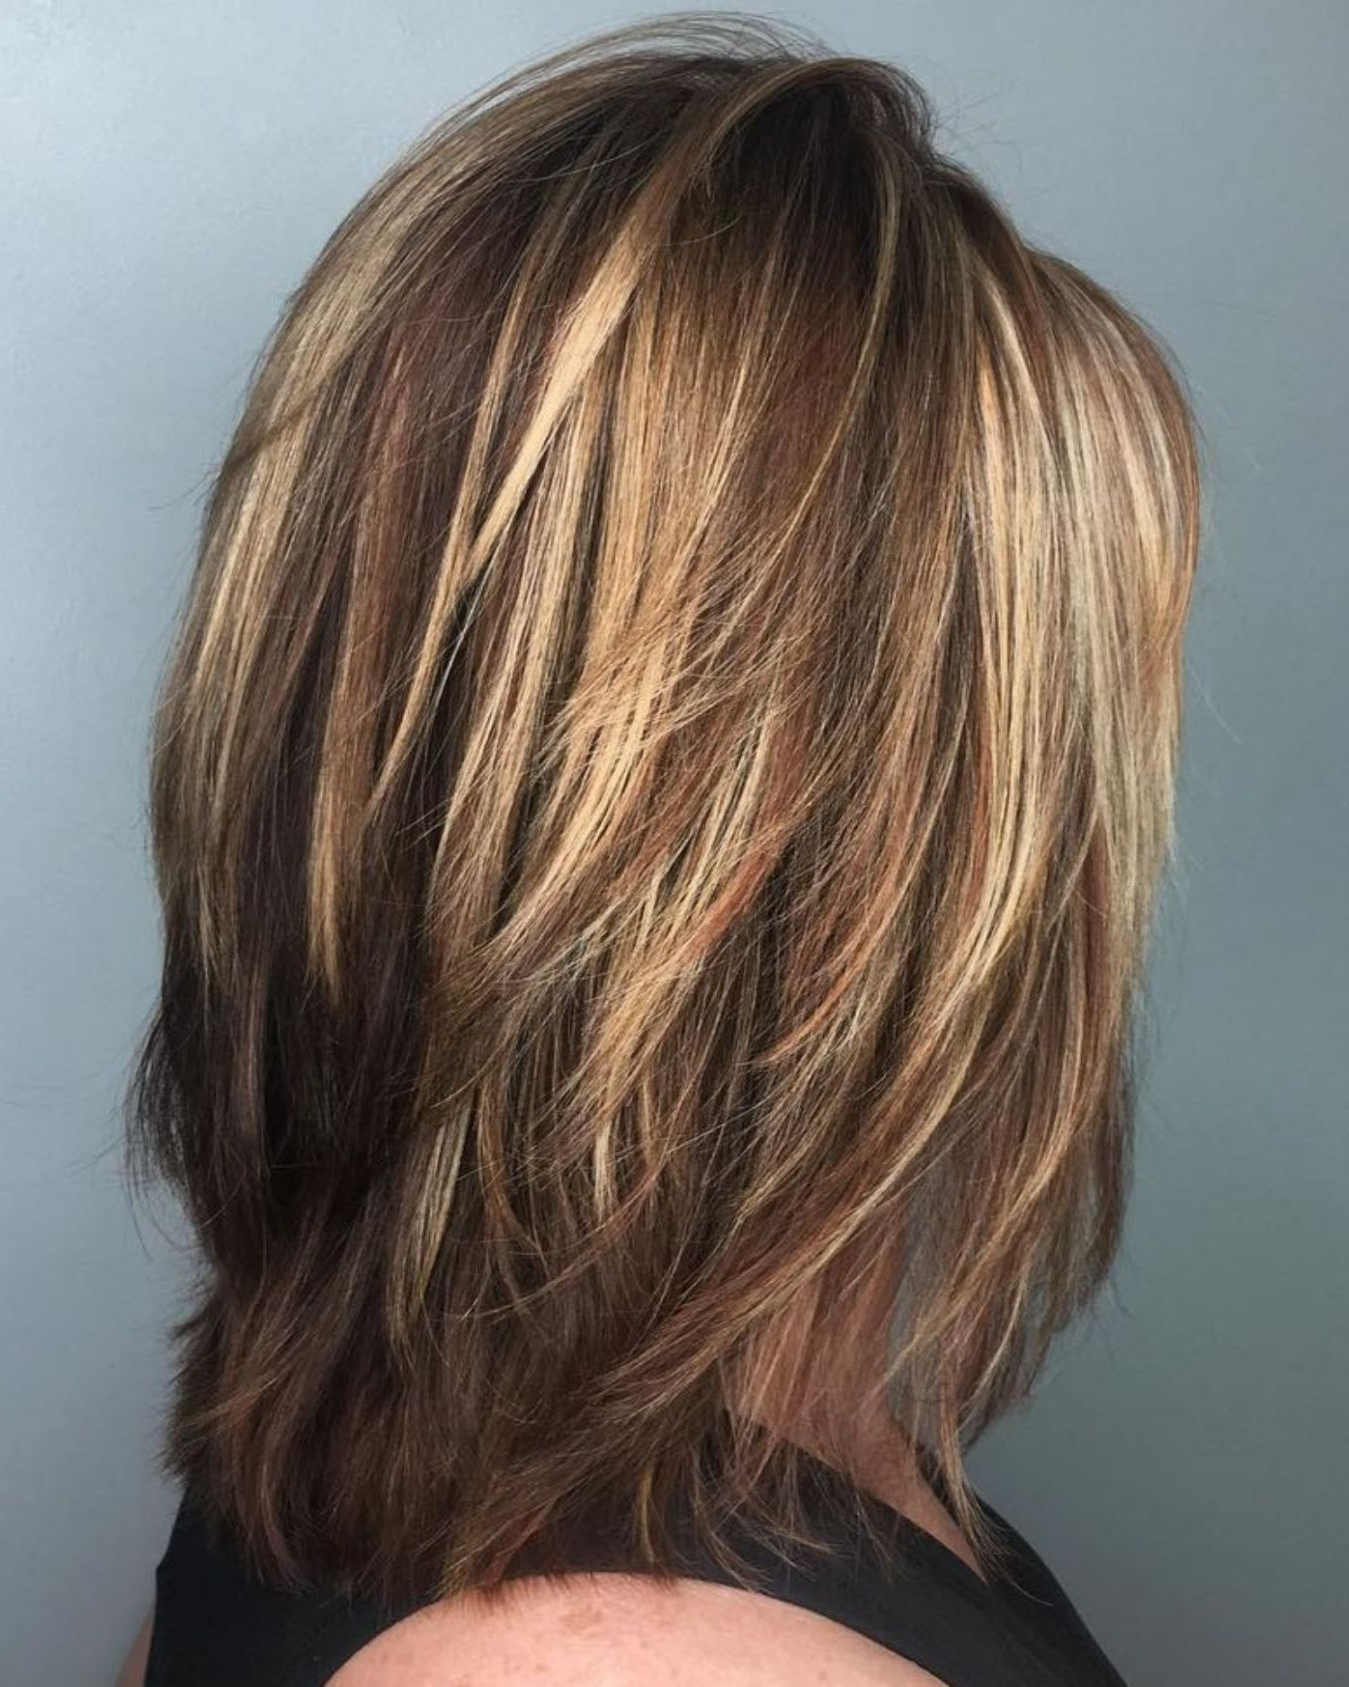 2017 Medium To Long Feathered Haircuts Regarding 70 Brightest Medium Layered Haircuts To Light You Up (View 2 of 20)